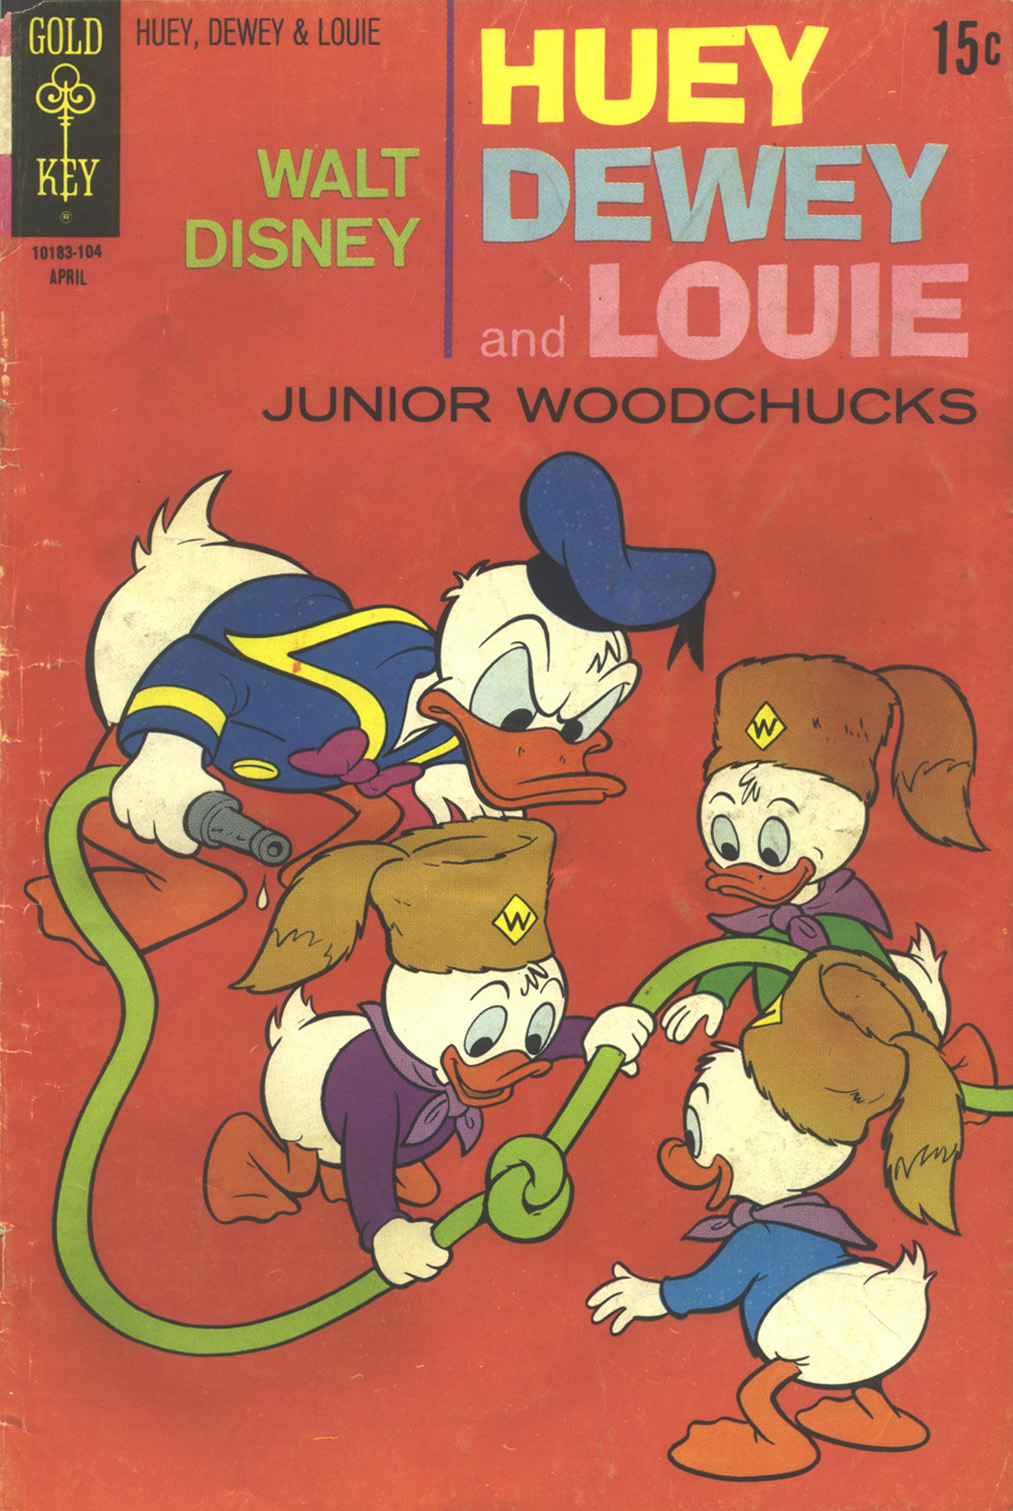 Huey, Dewey, and Louie Junior Woodchucks 9 Page 1